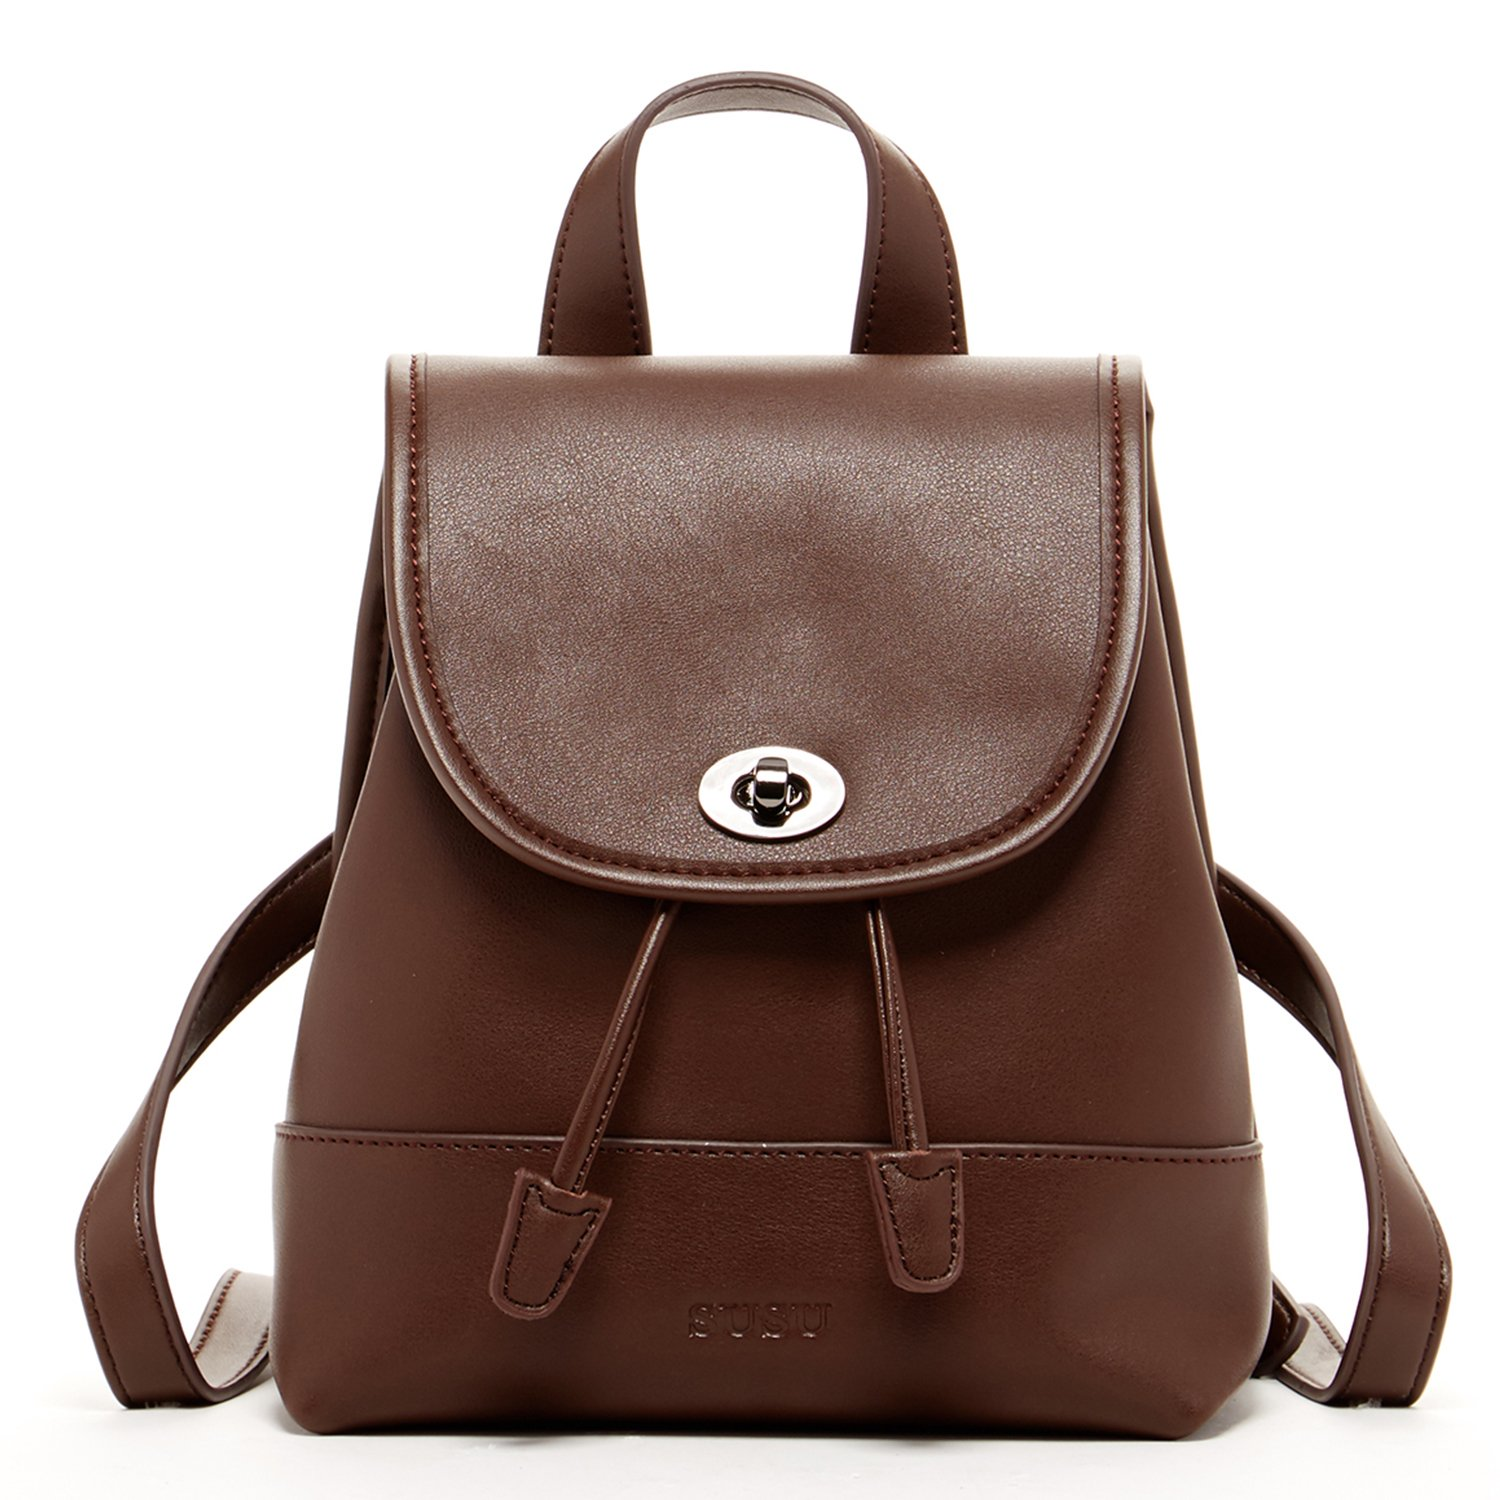 SUSU Designer Backpacks For Women Dark Brown Small Leather Backpack Purse Vintage Look Pocket Book For Travel Christmas Gift by SUSU